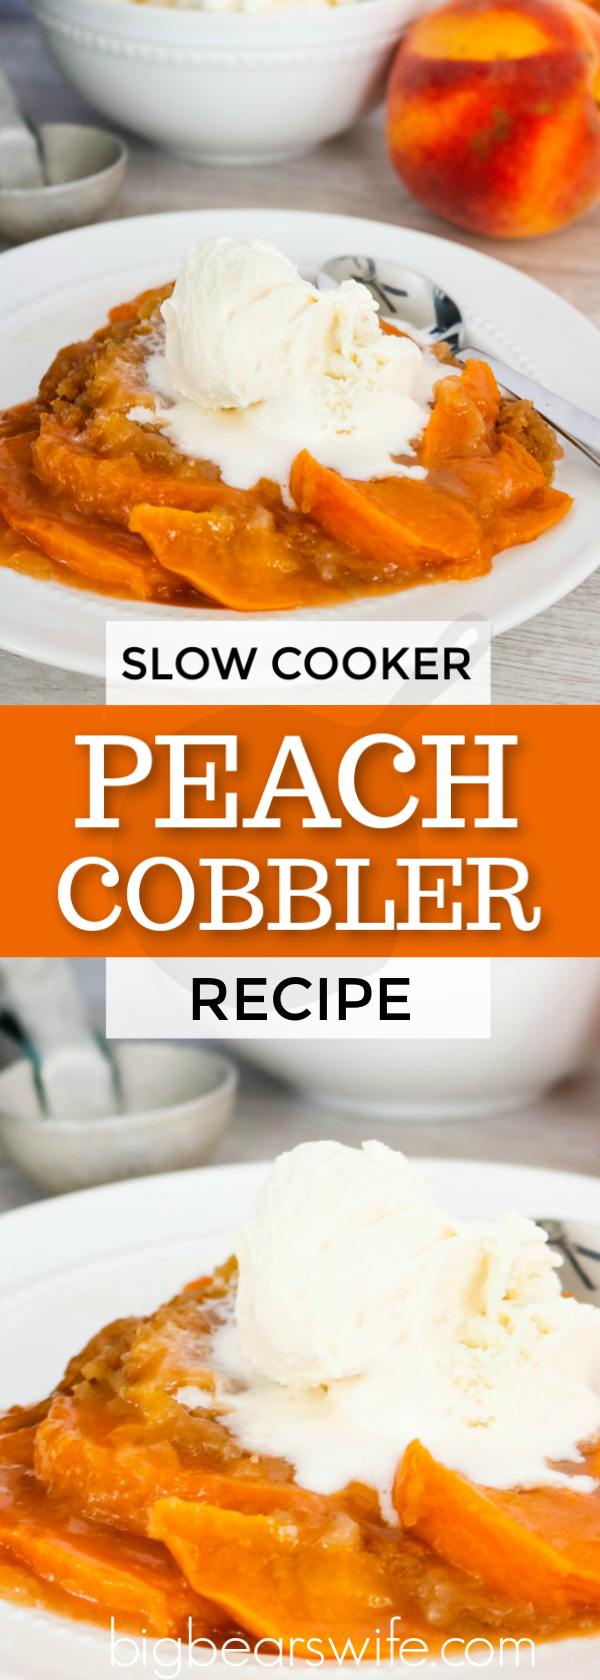 Use those fresh Farmer's Market peaches to make this amazing slow cooker peach cobbler!  It's perfect alone but even better when topped with ice cream or whipped cream! #slowcookerdessert #slowcookerpeachcobbler #peachcobbler